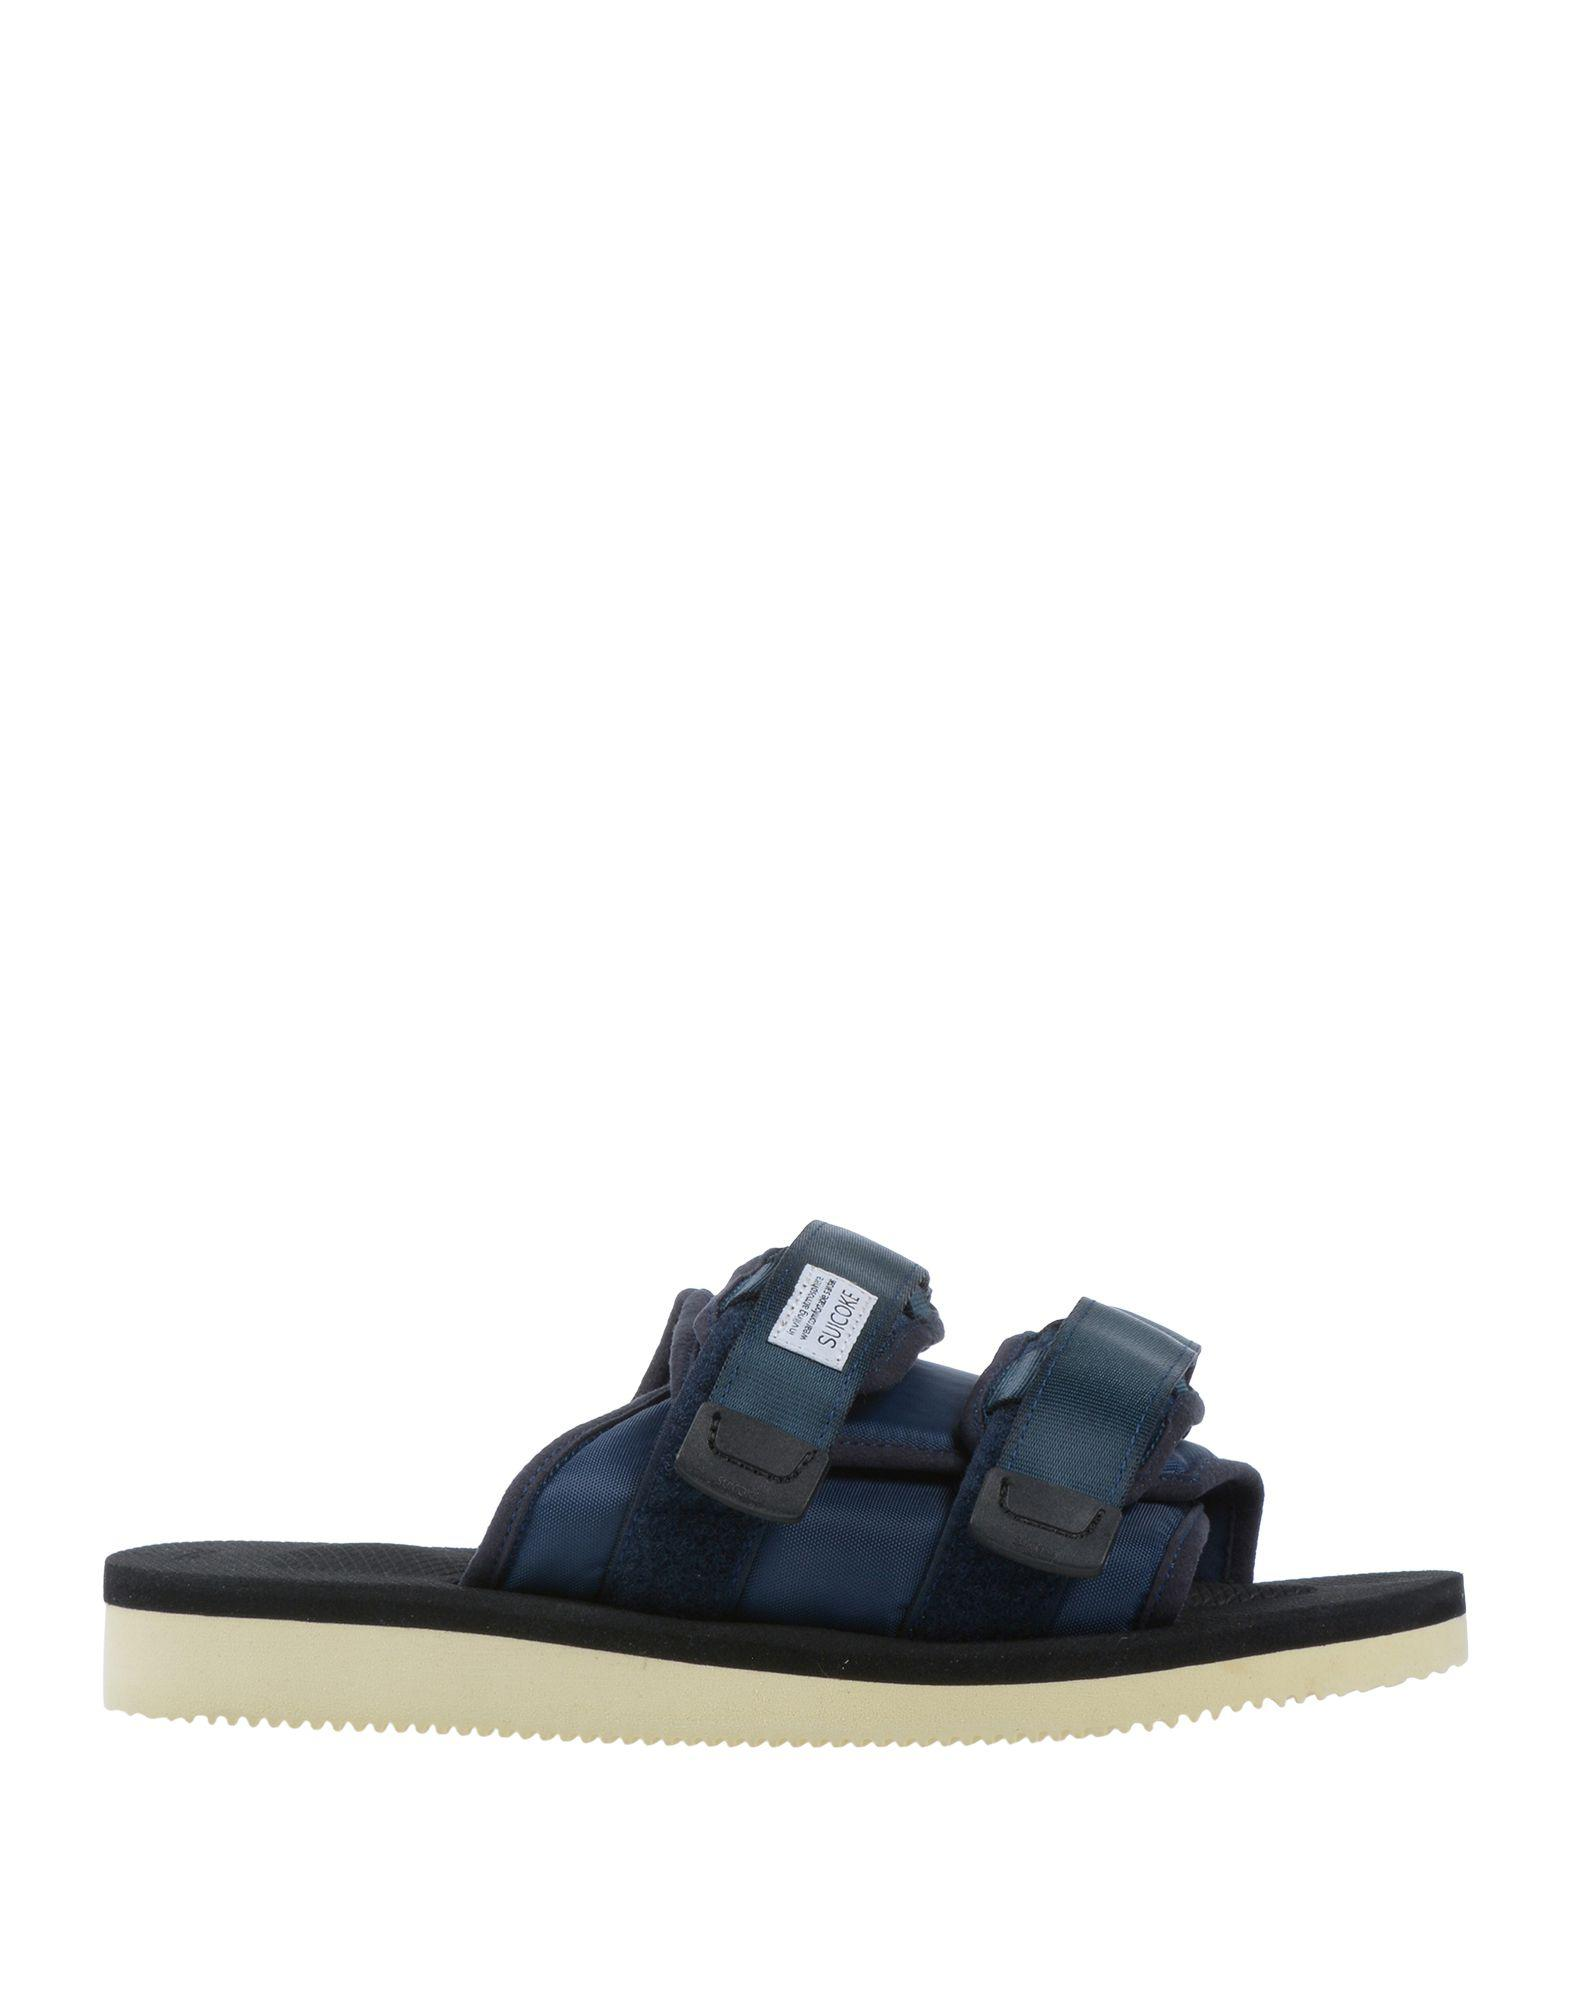 040c58a46d9 Lyst - Suicoke Sandals in Blue for Men